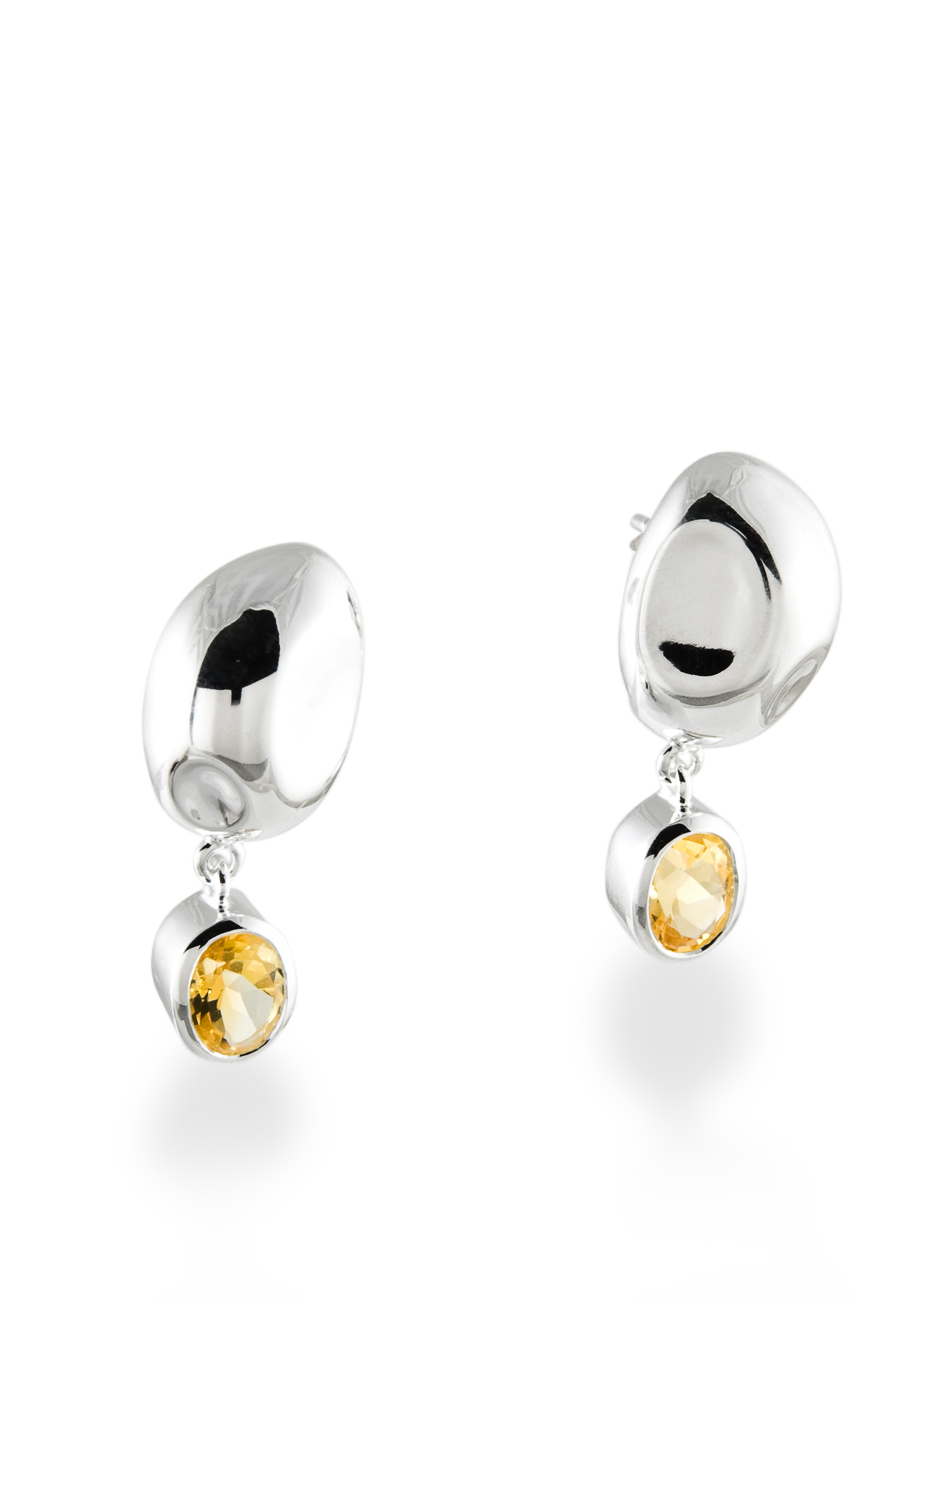 Zina Touchstone Earrings B371 product image